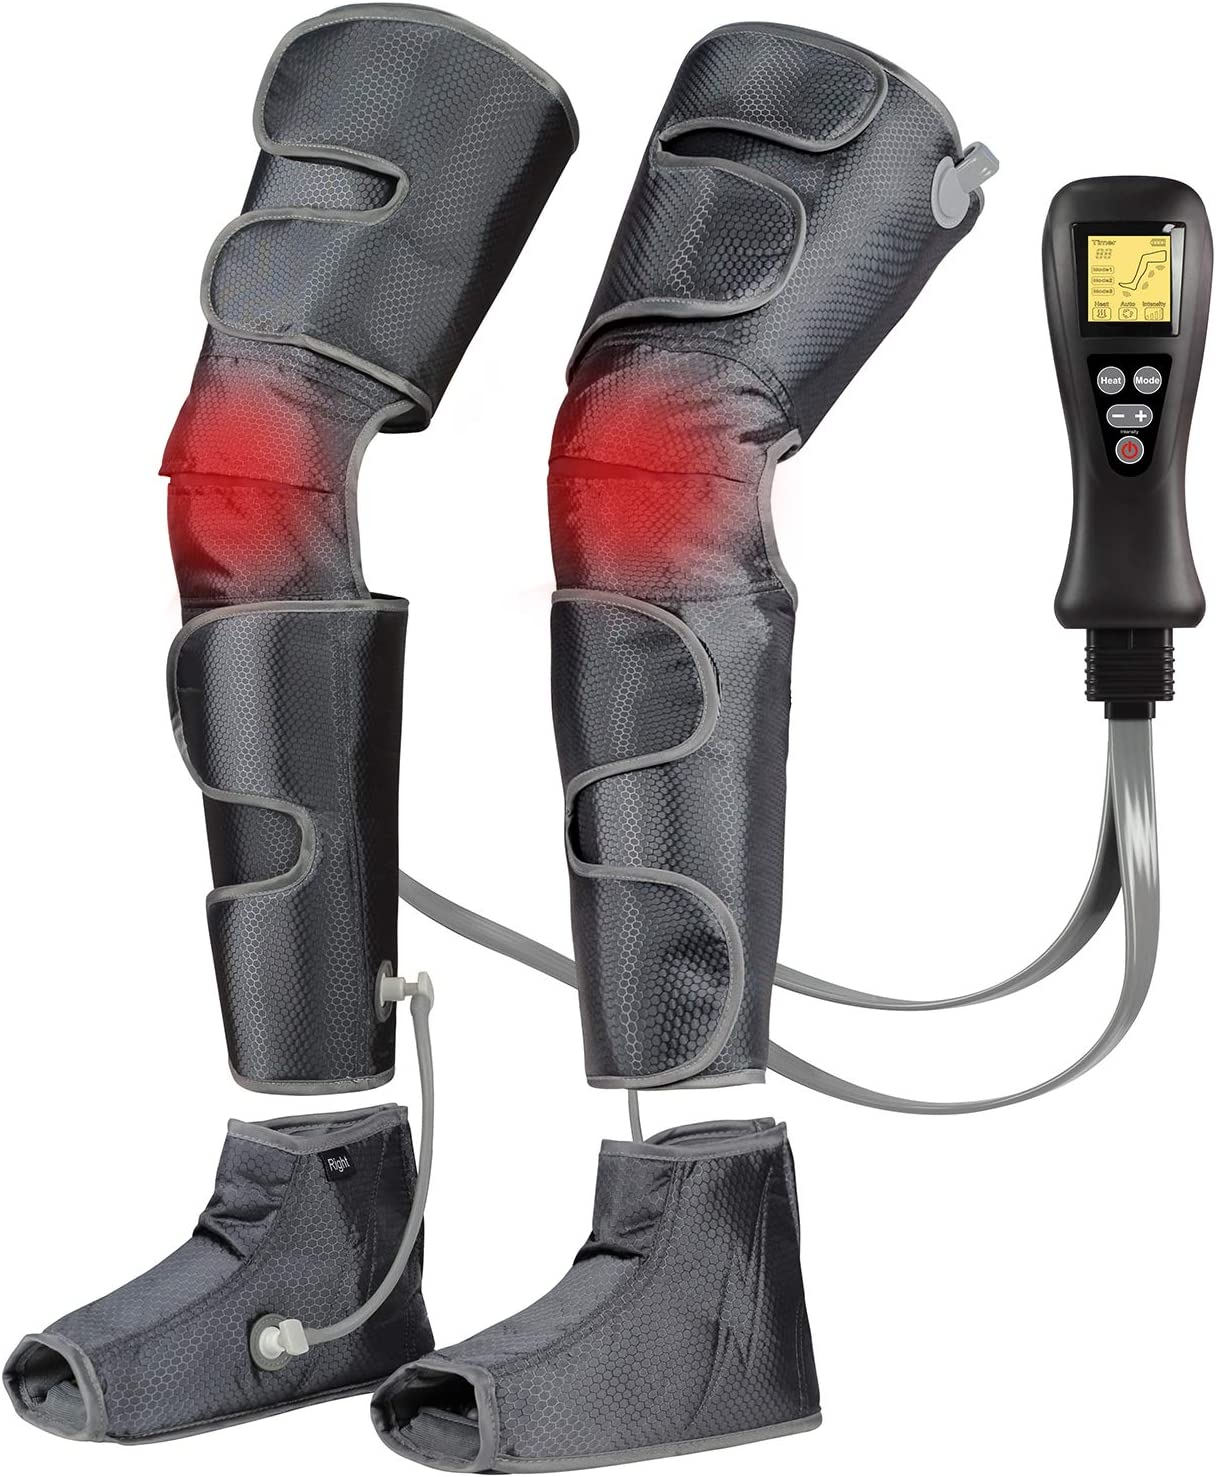 Leg-Massager for Circulation with Heat, Compression Calf Thigh Foot Massage, Muscle Pain Relief Sequential Boots Device with Handheld Controller with 4 Modes 4 Intensities